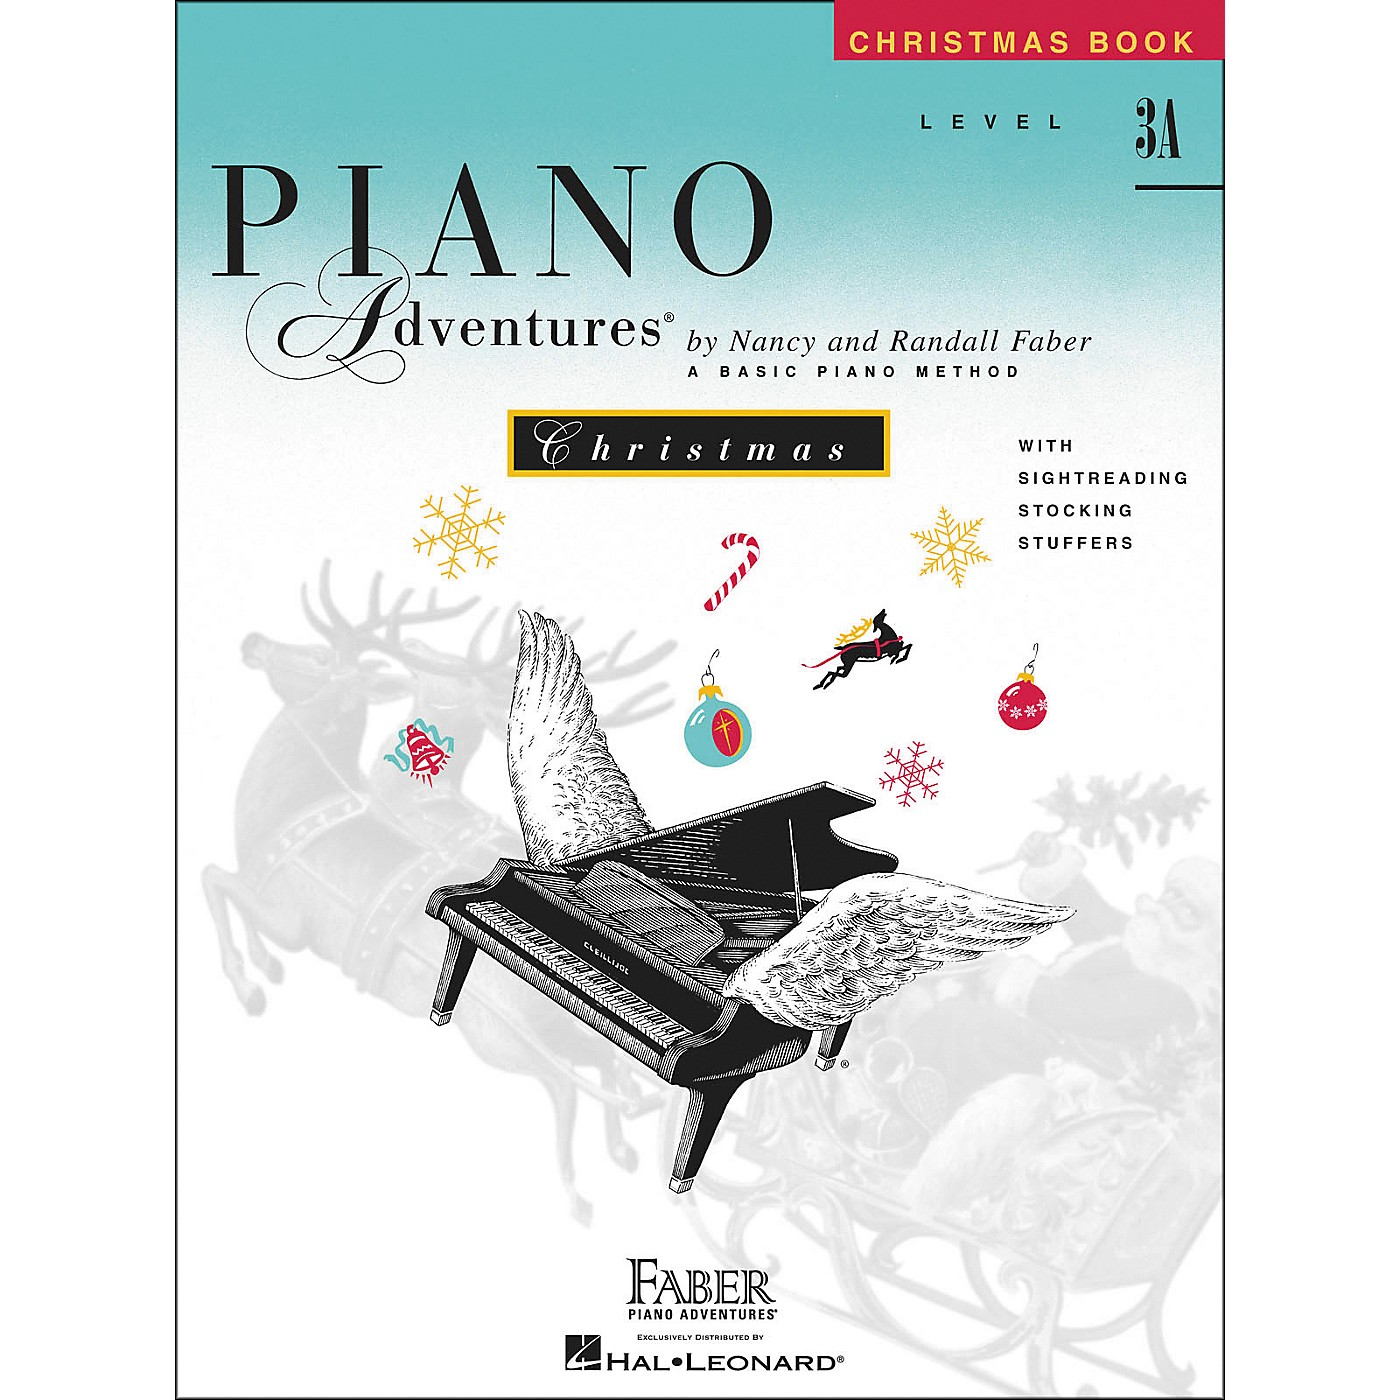 Faber Piano Adventures Piano Adventures Christmas Level 3A - Faber Piano thumbnail